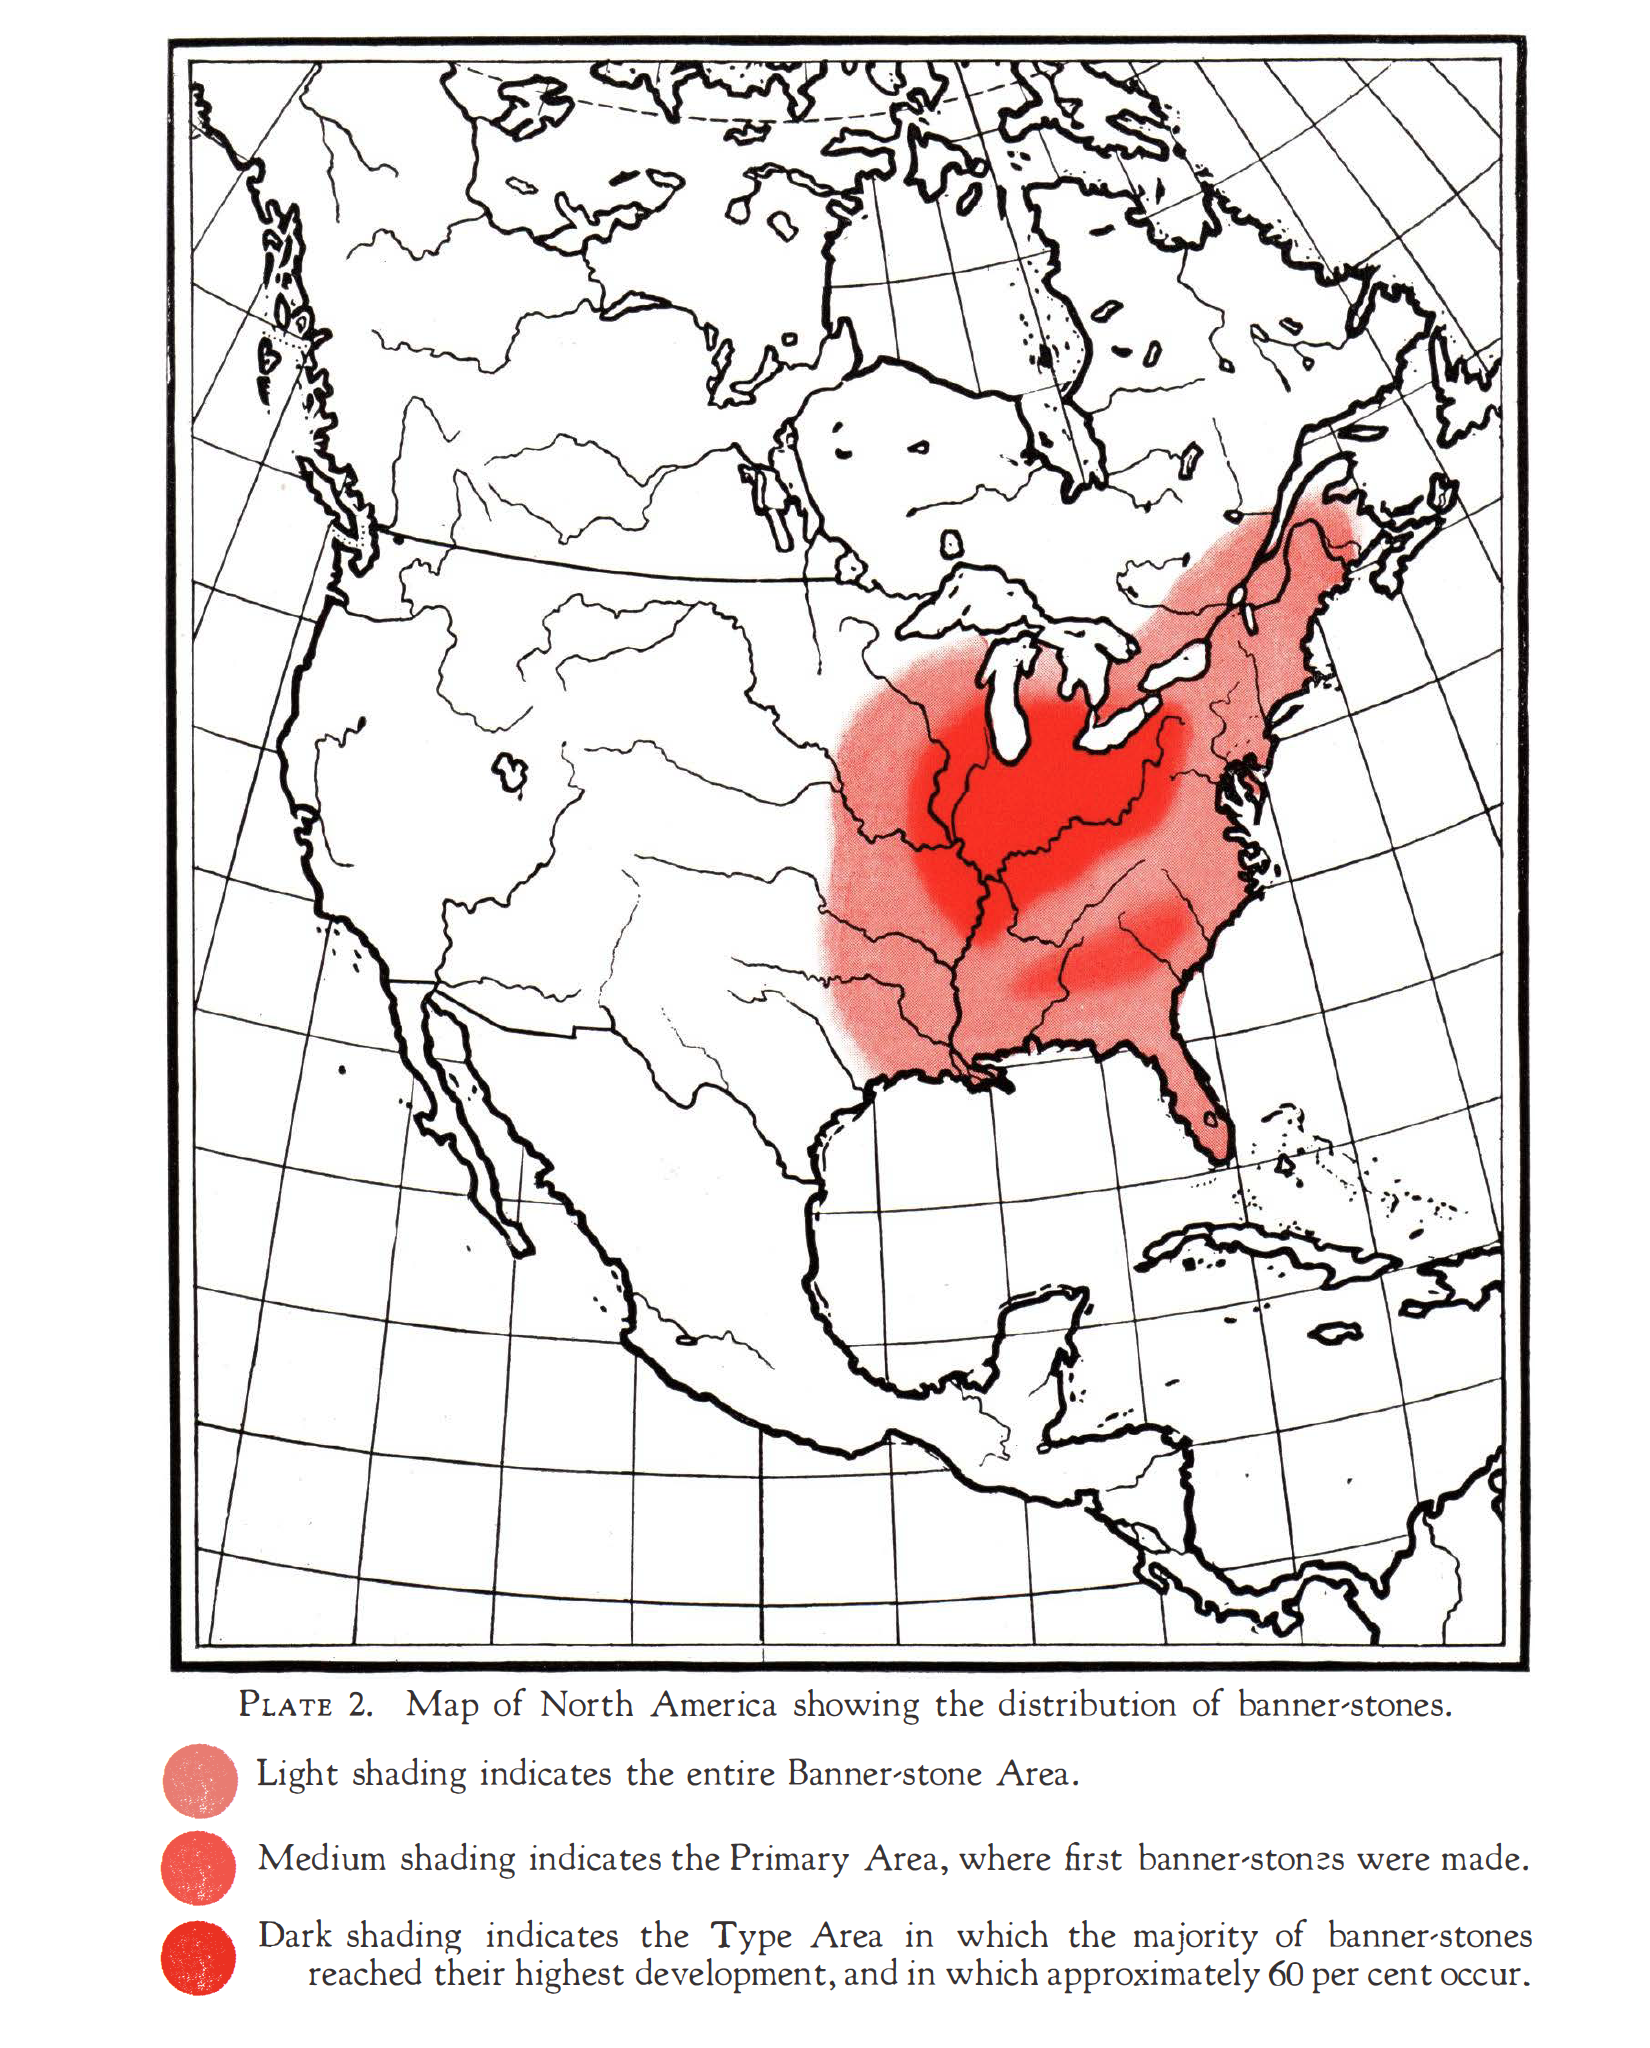 Map of North America showing the distribution of banner-stones